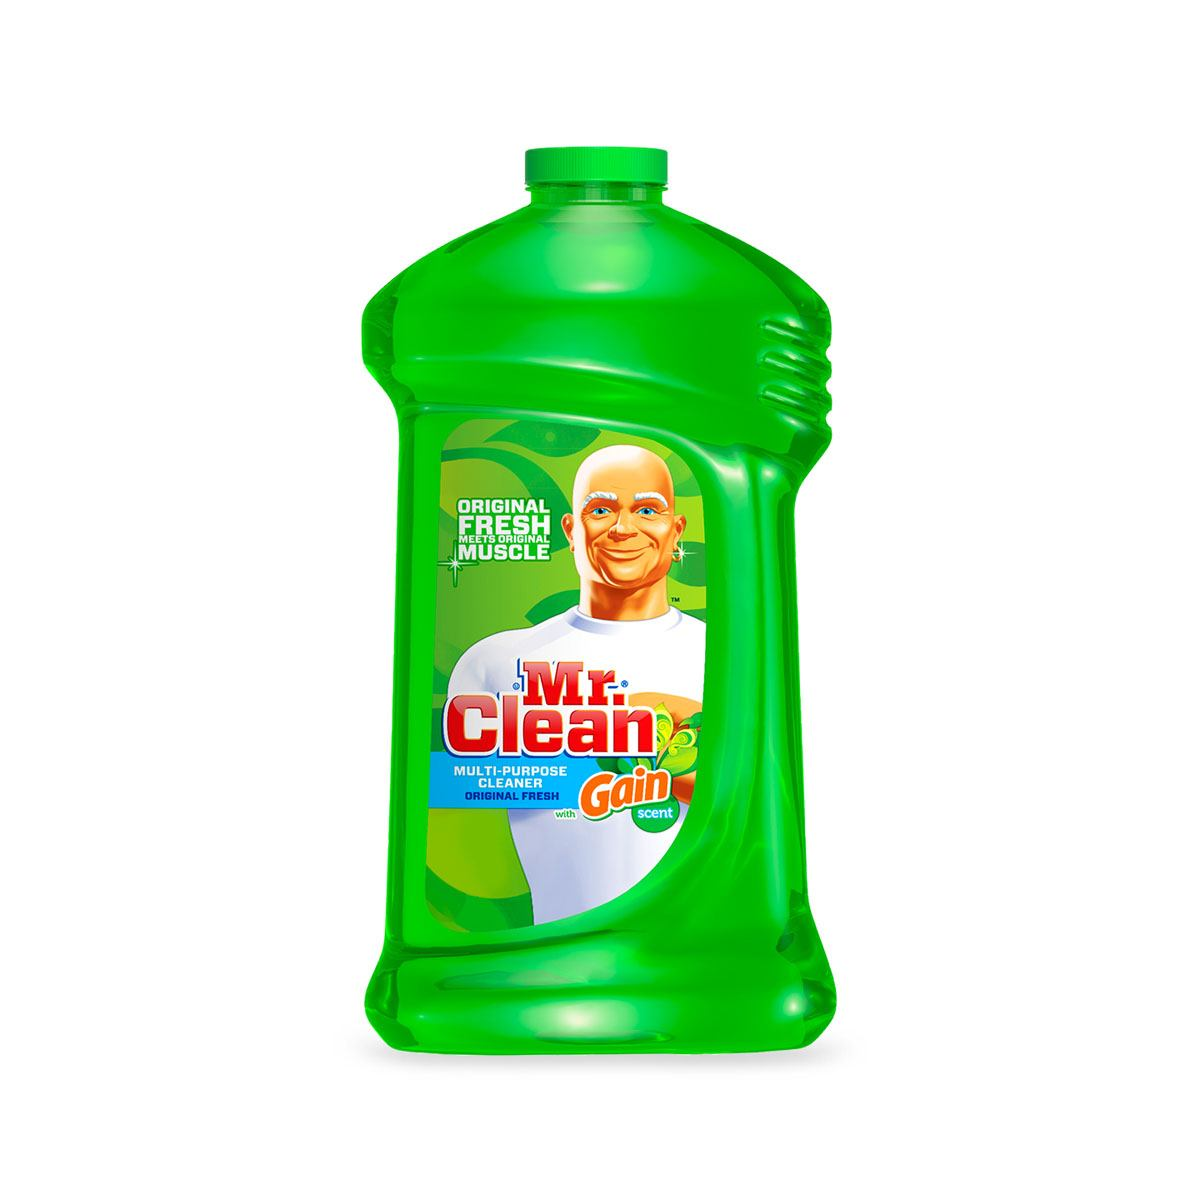 Mr. Clean Multi-Surfaces Liquid Cleaner with Gain Original Scent